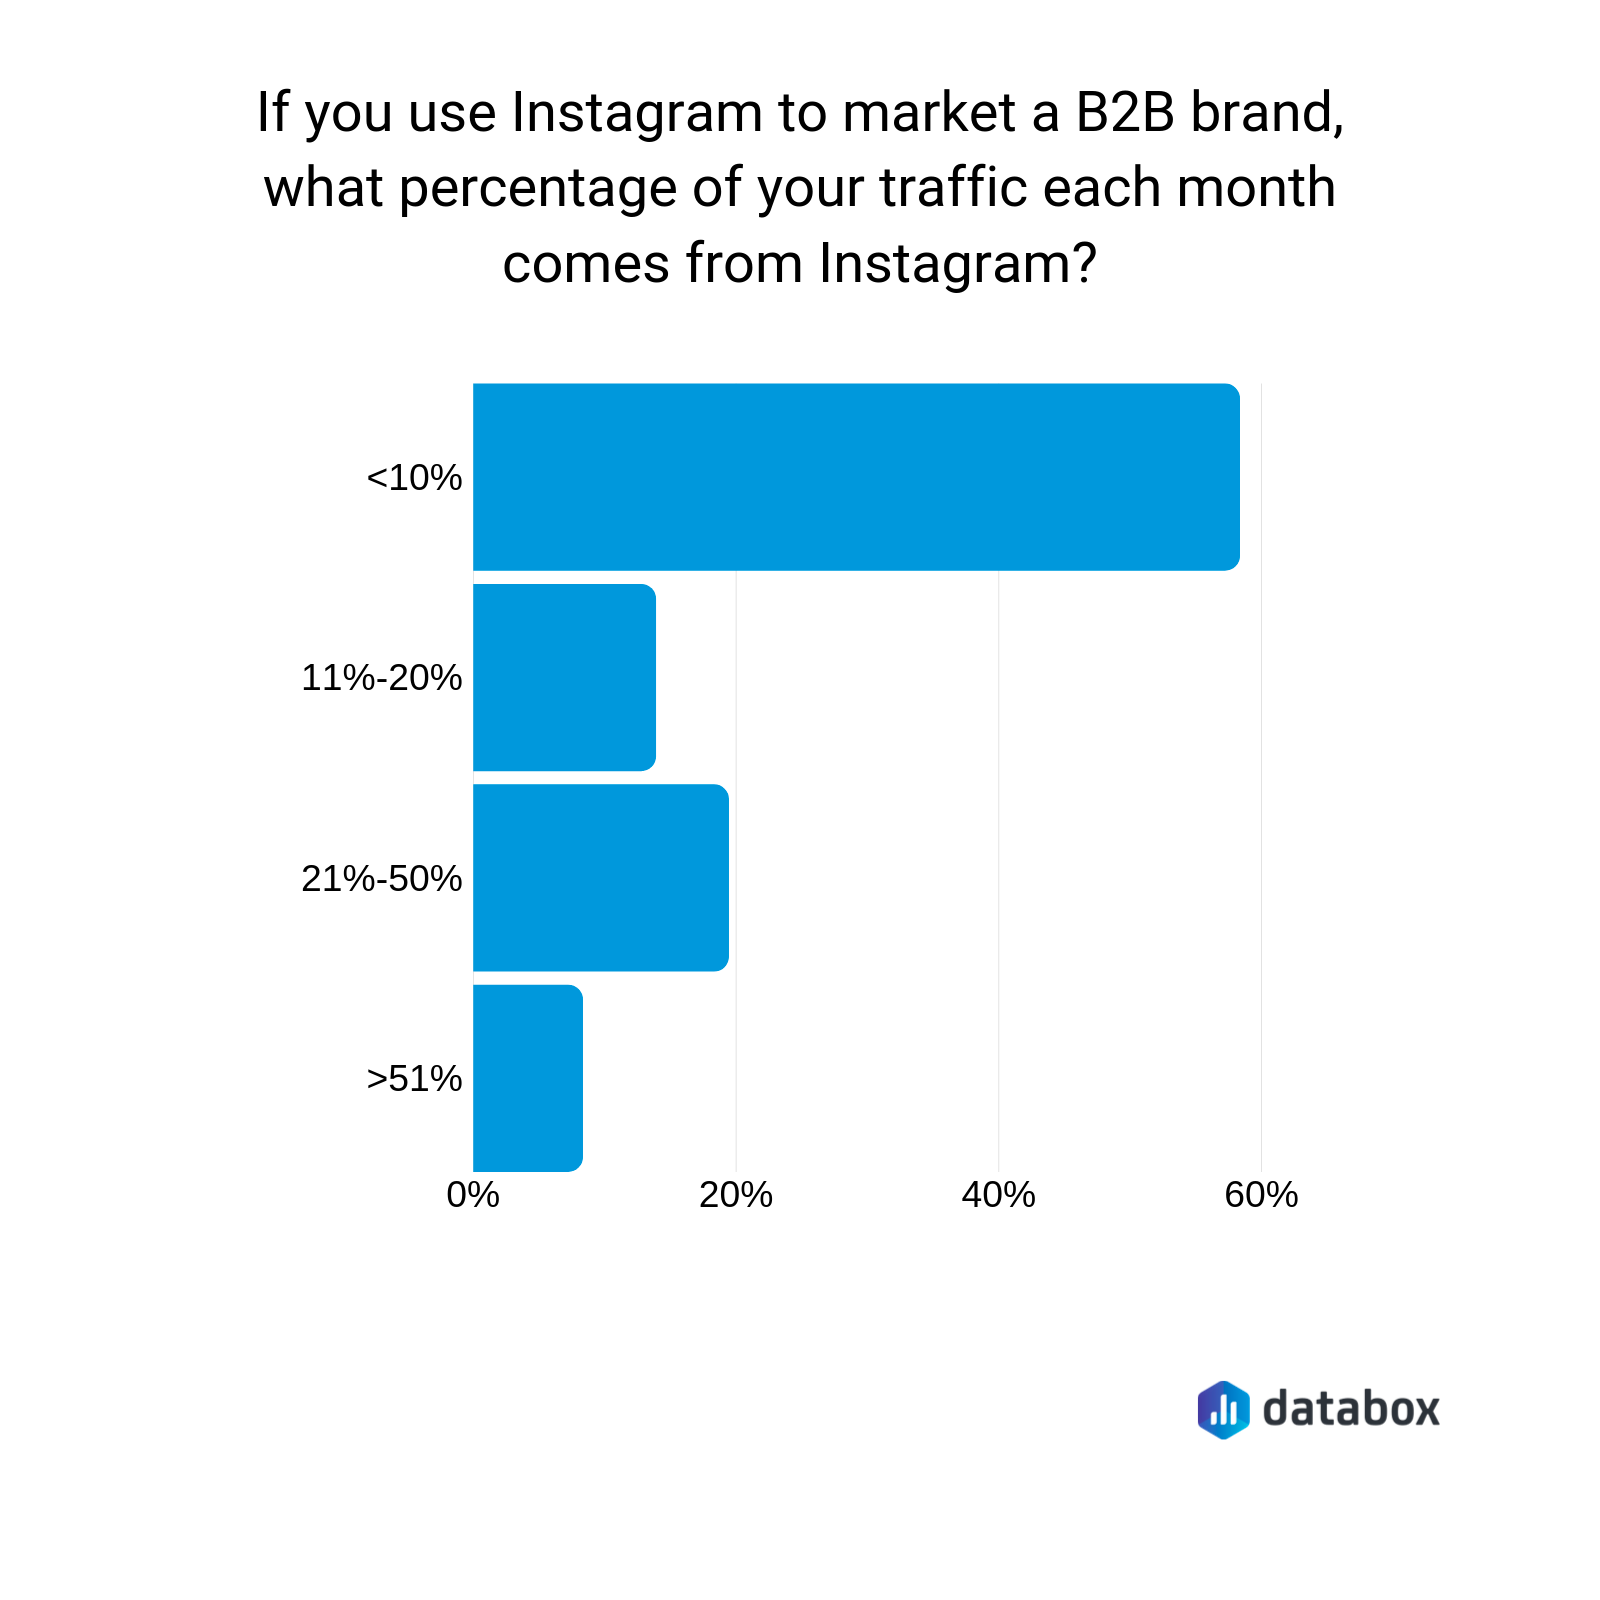 what percentage of b2b traffic comes from instagram